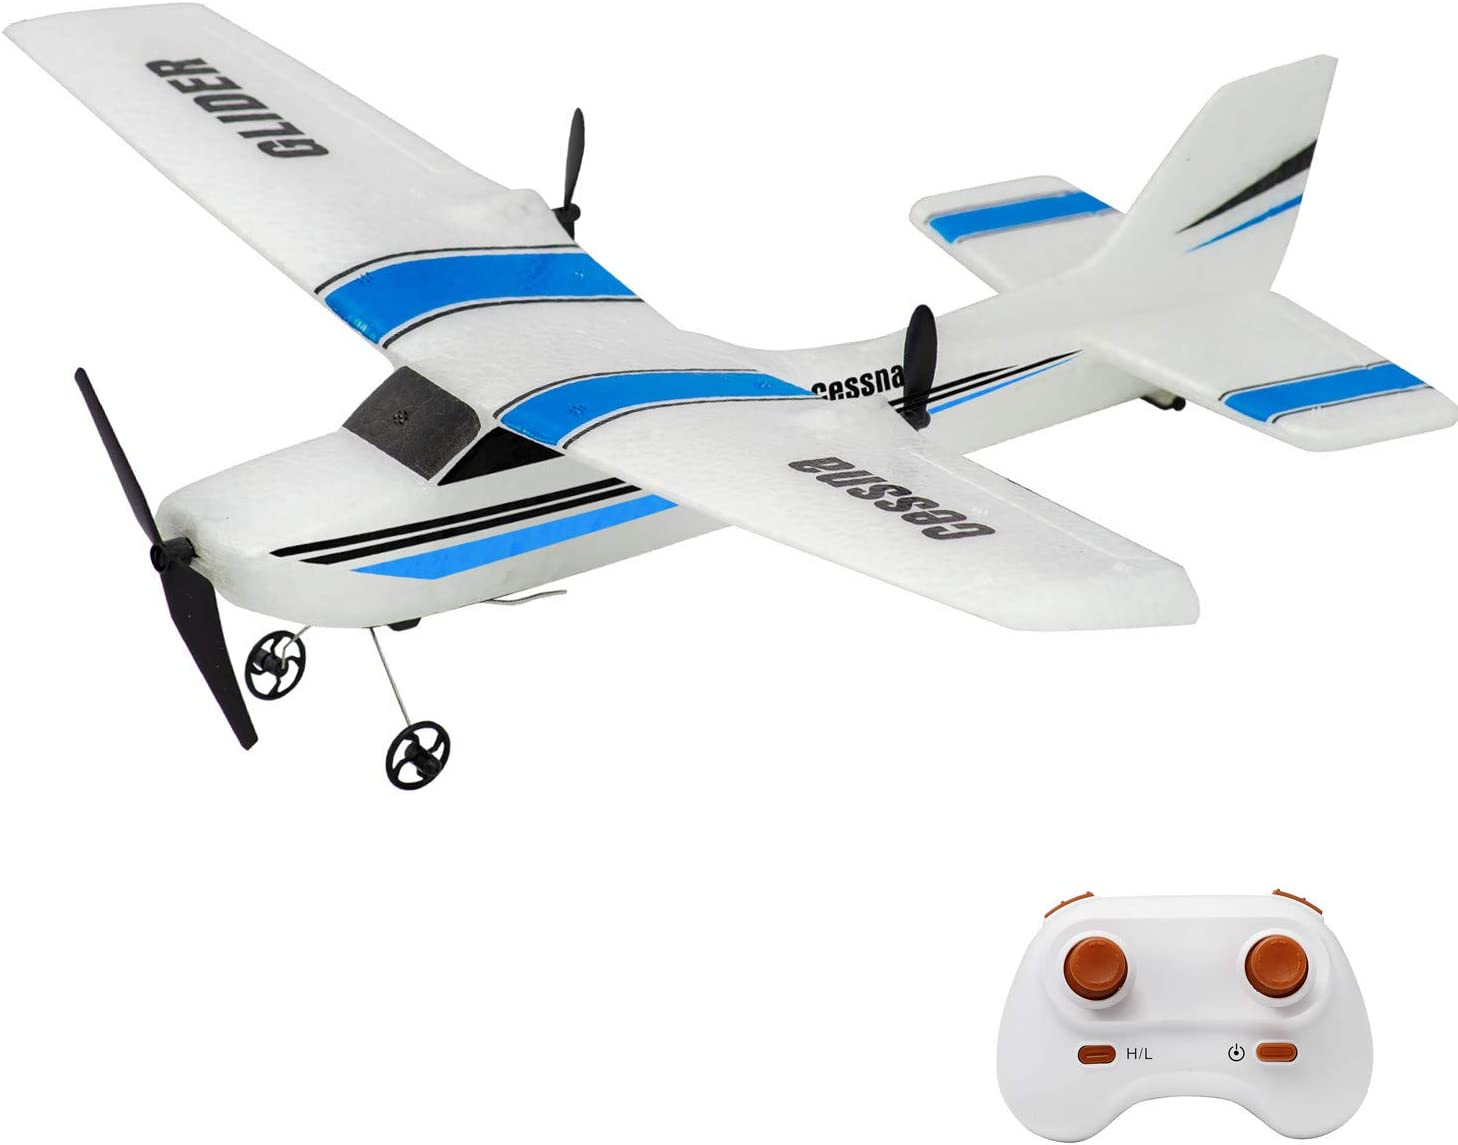 Landbow RC Plane, 2.4Ghz 2 Channels Remote Control Airplane Ready to Fly,Styrofoam RC Plane with 3-Axis Gyro,Stability Flight RC Aircraft for Kids Boys Beginner